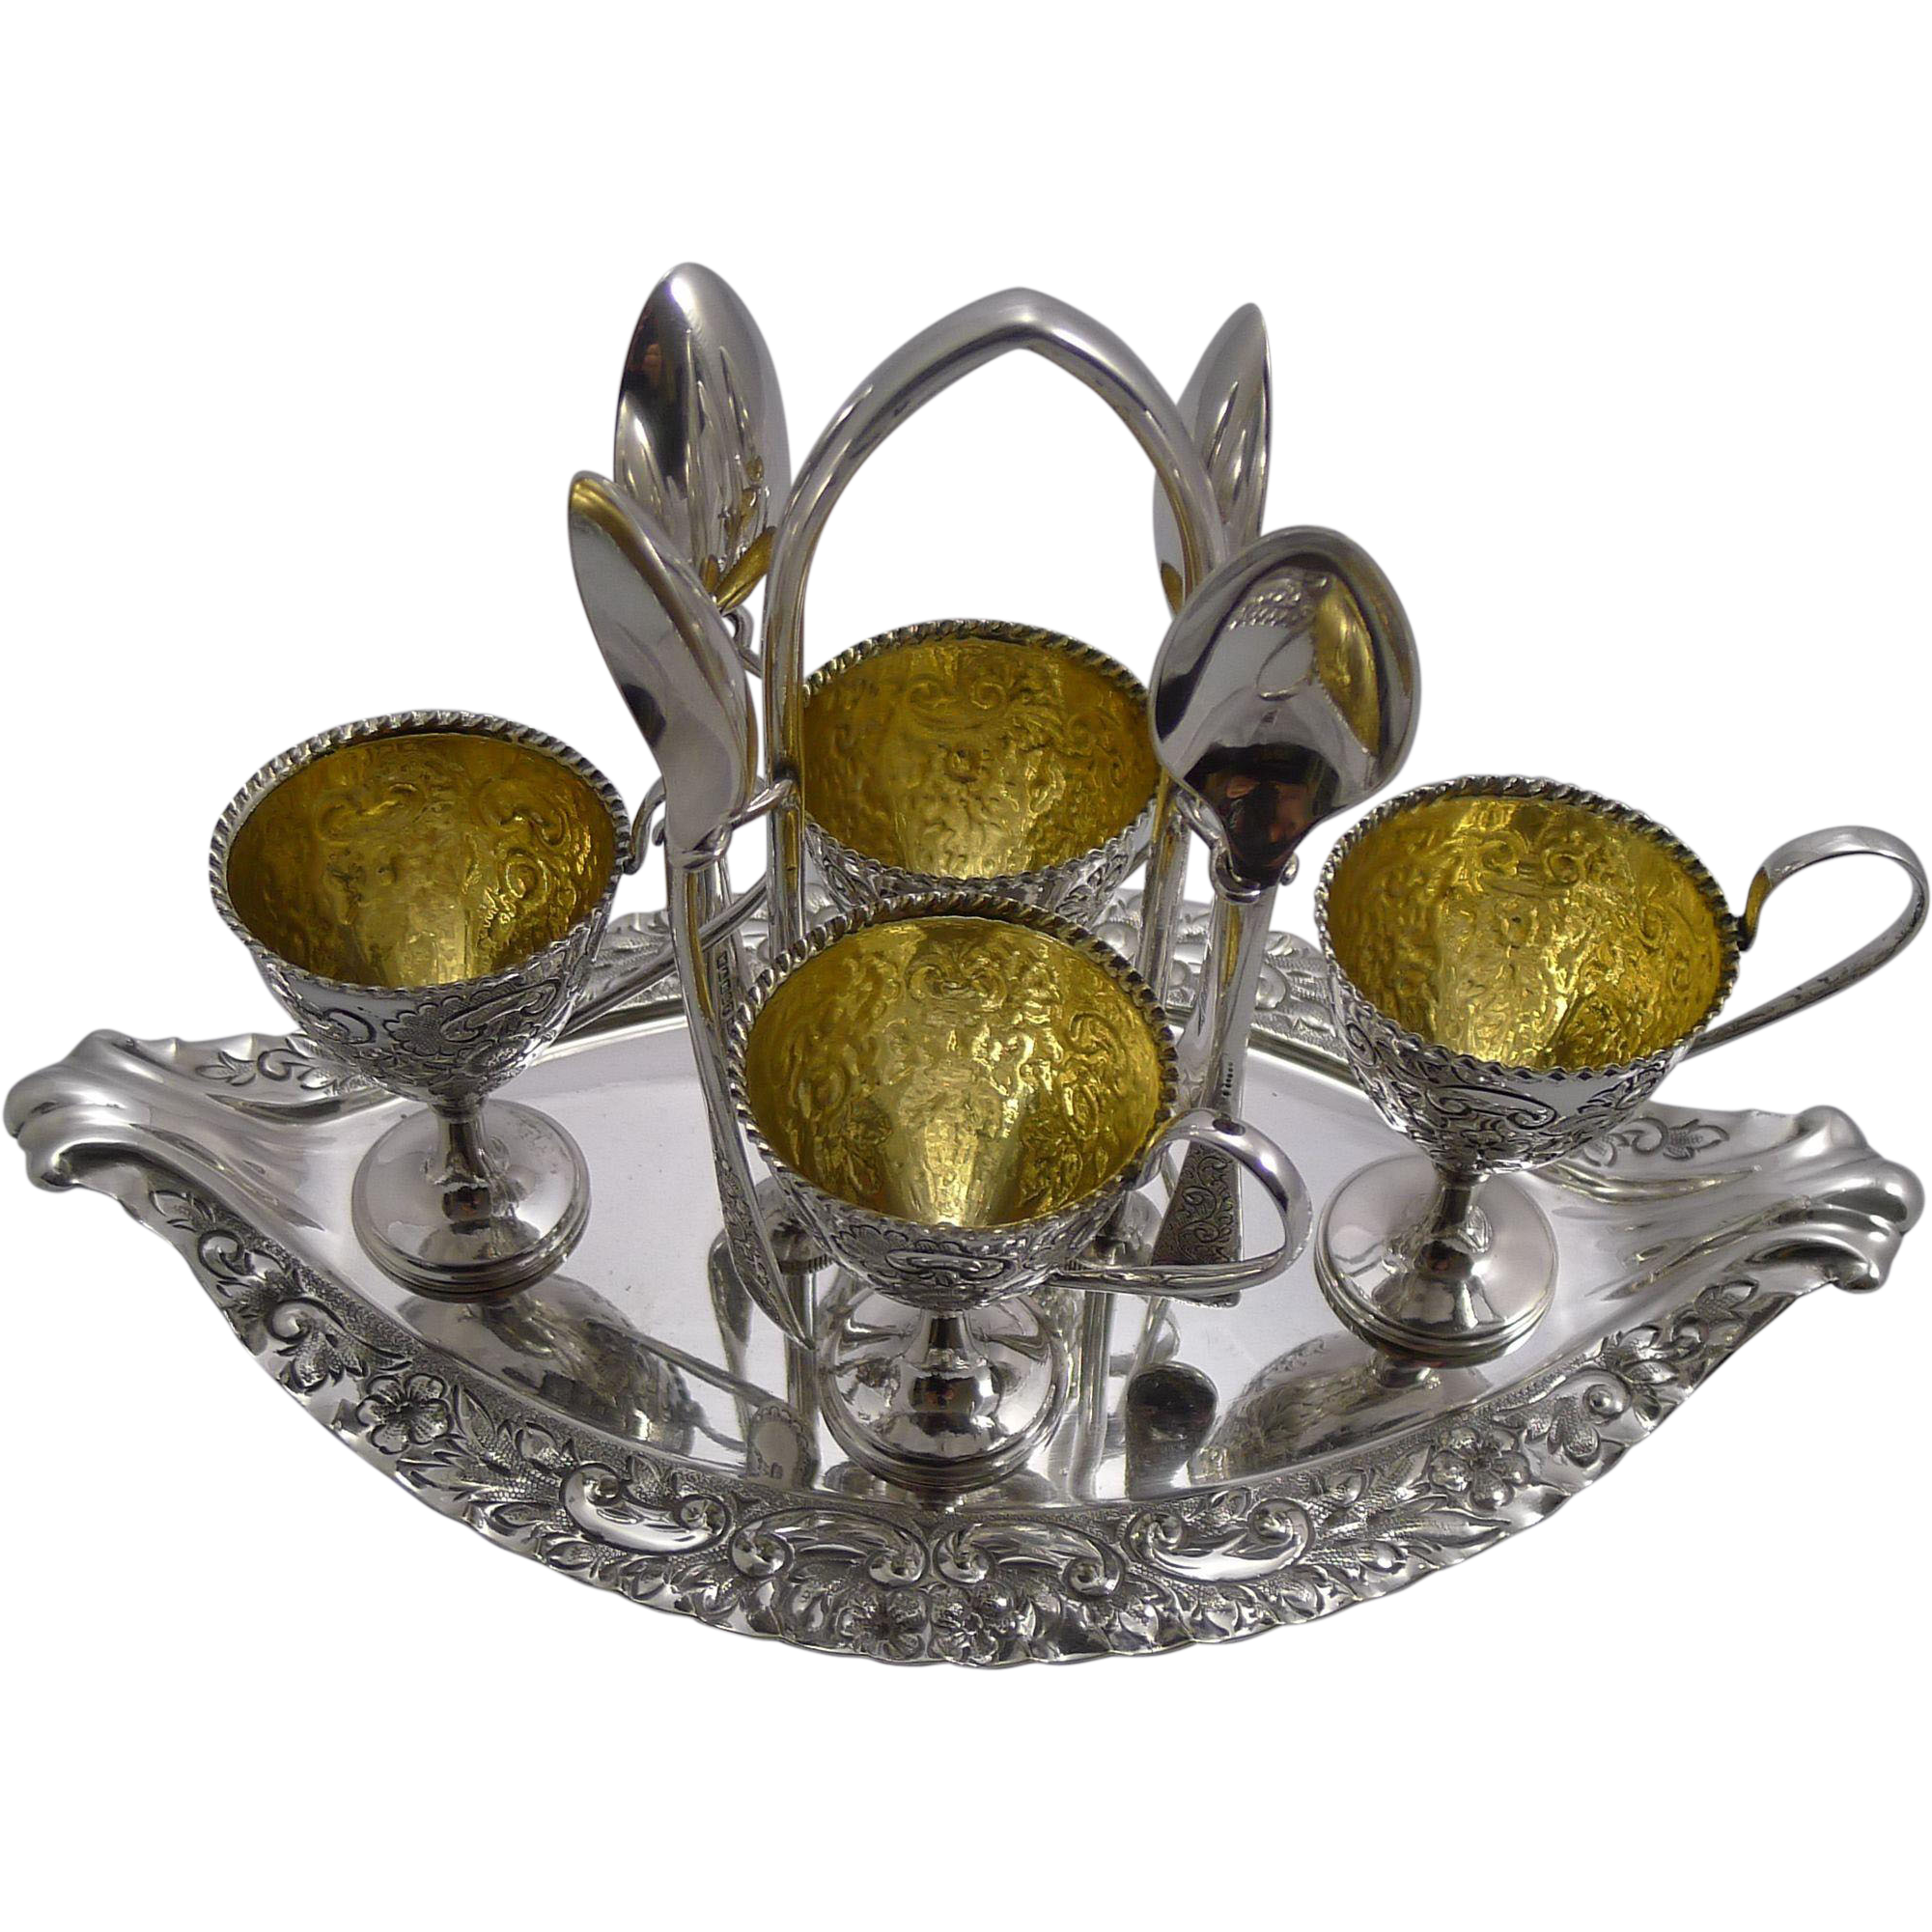 Magnificent Antique English Silver Plated Egg Cruet by Walker & Hall c.1903